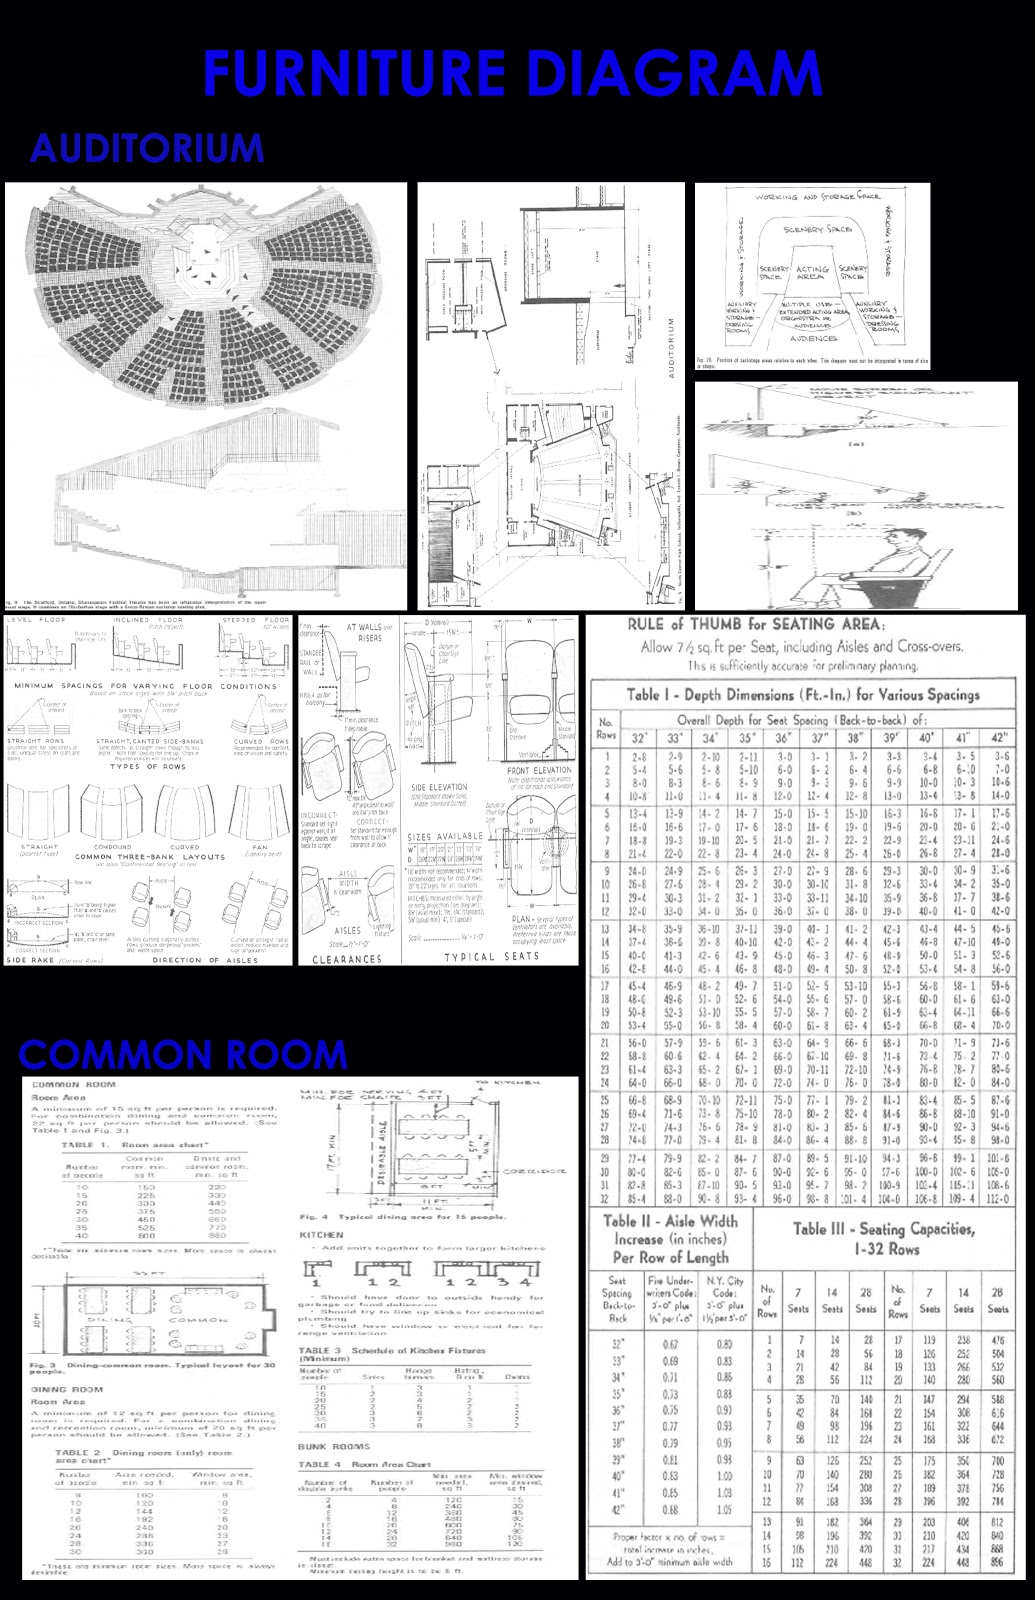 Arch Sp12tanzinad Space Plan Section And Furniture Layout